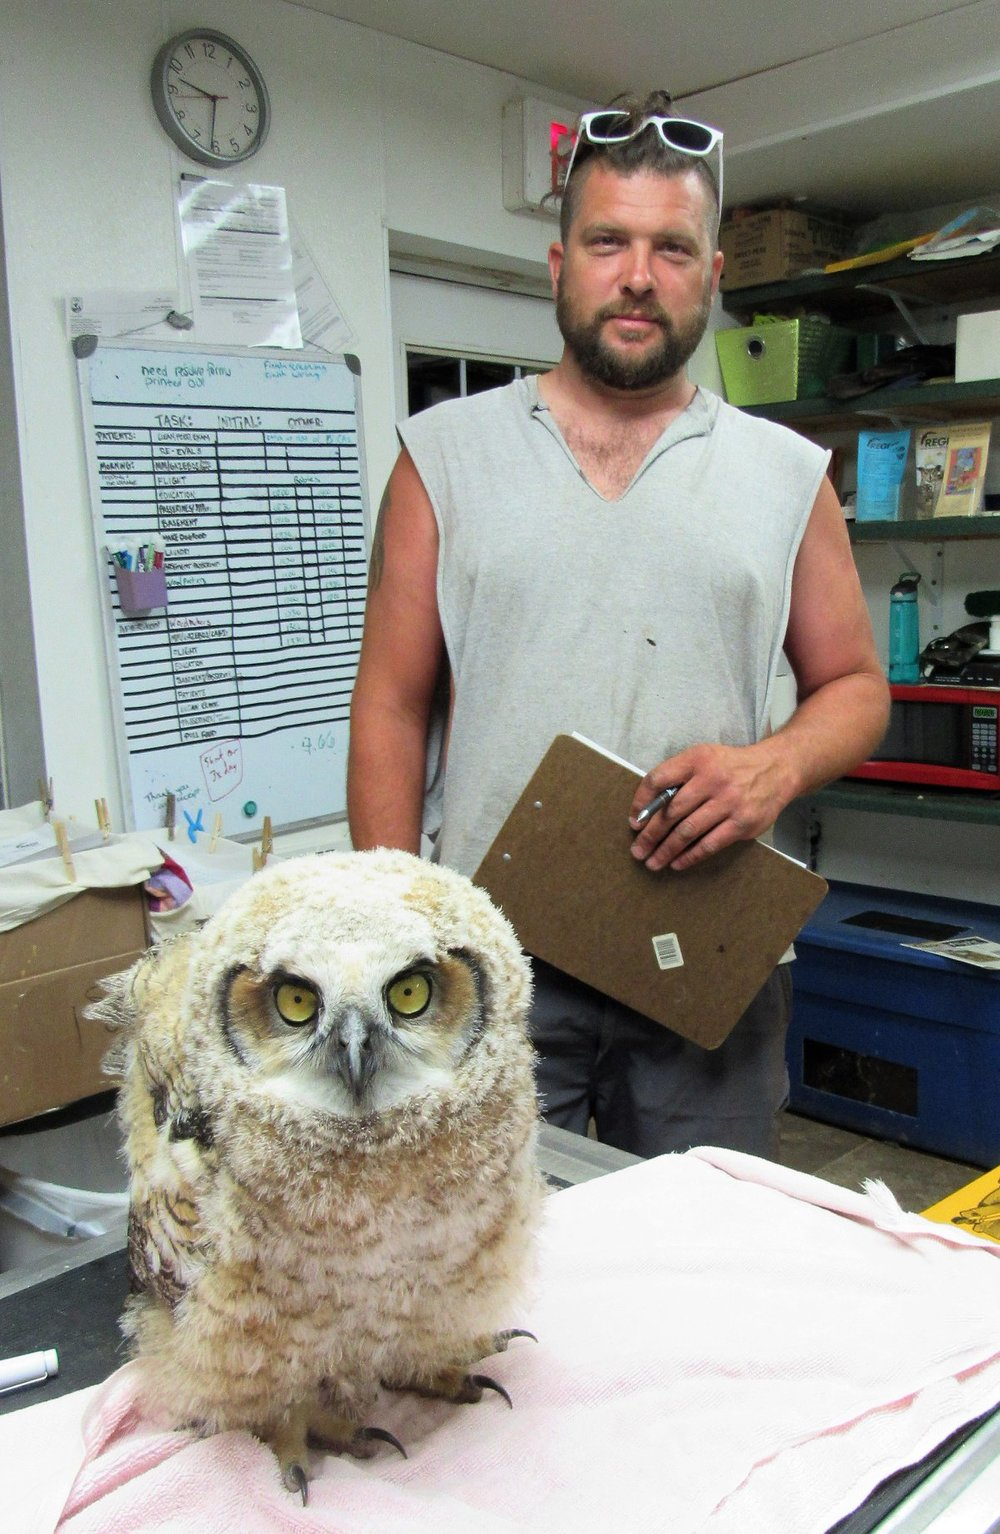 This little tyke Great horned owl was saved by the kindness of a passerby.